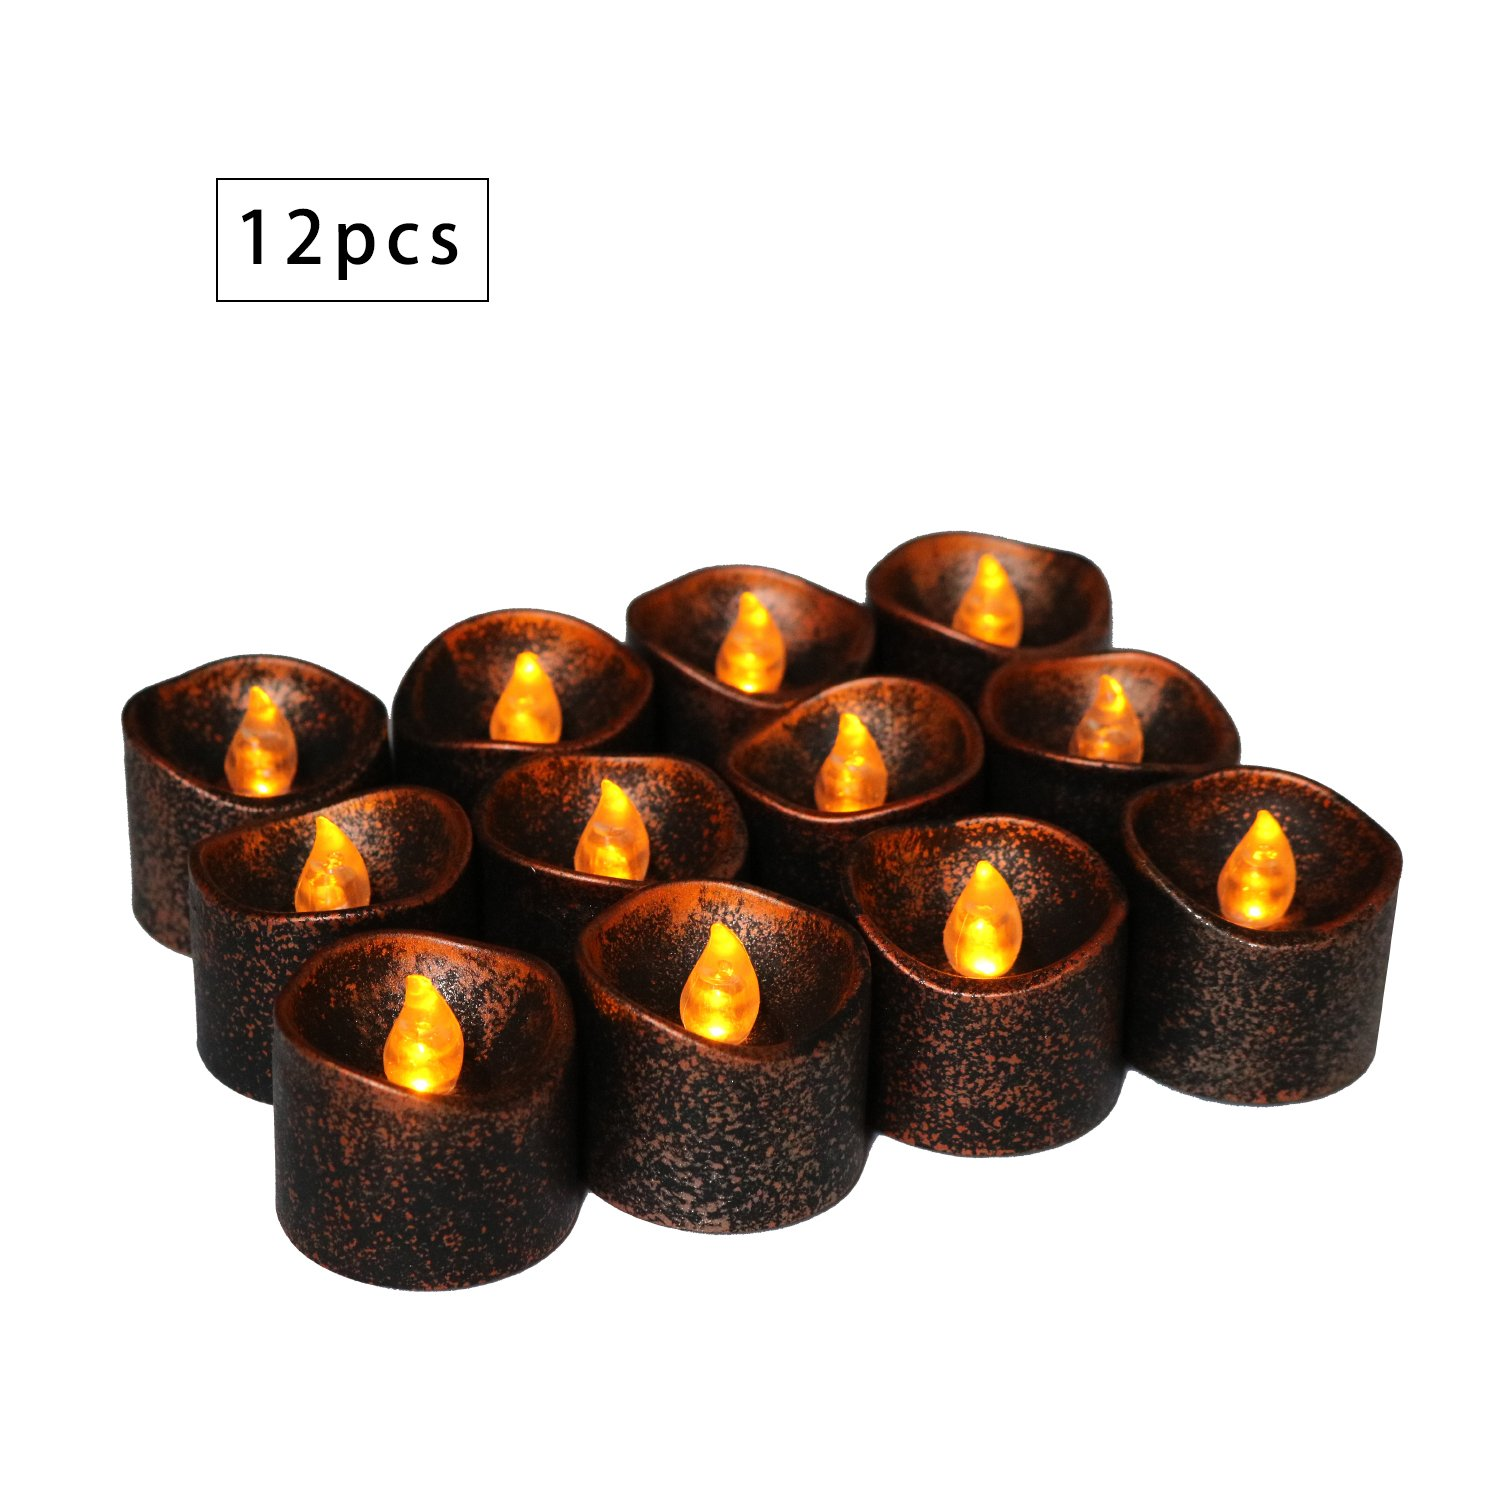 12 Pack Black Flameless Candles Led Tea Light Flickering Amber Battery Operated Tea Lights Novelty Candle for Wedding Centerpiece Tiny Pillar Vintage Electric Votives Long Burn Christmas Thanksgiving Youngerbaby